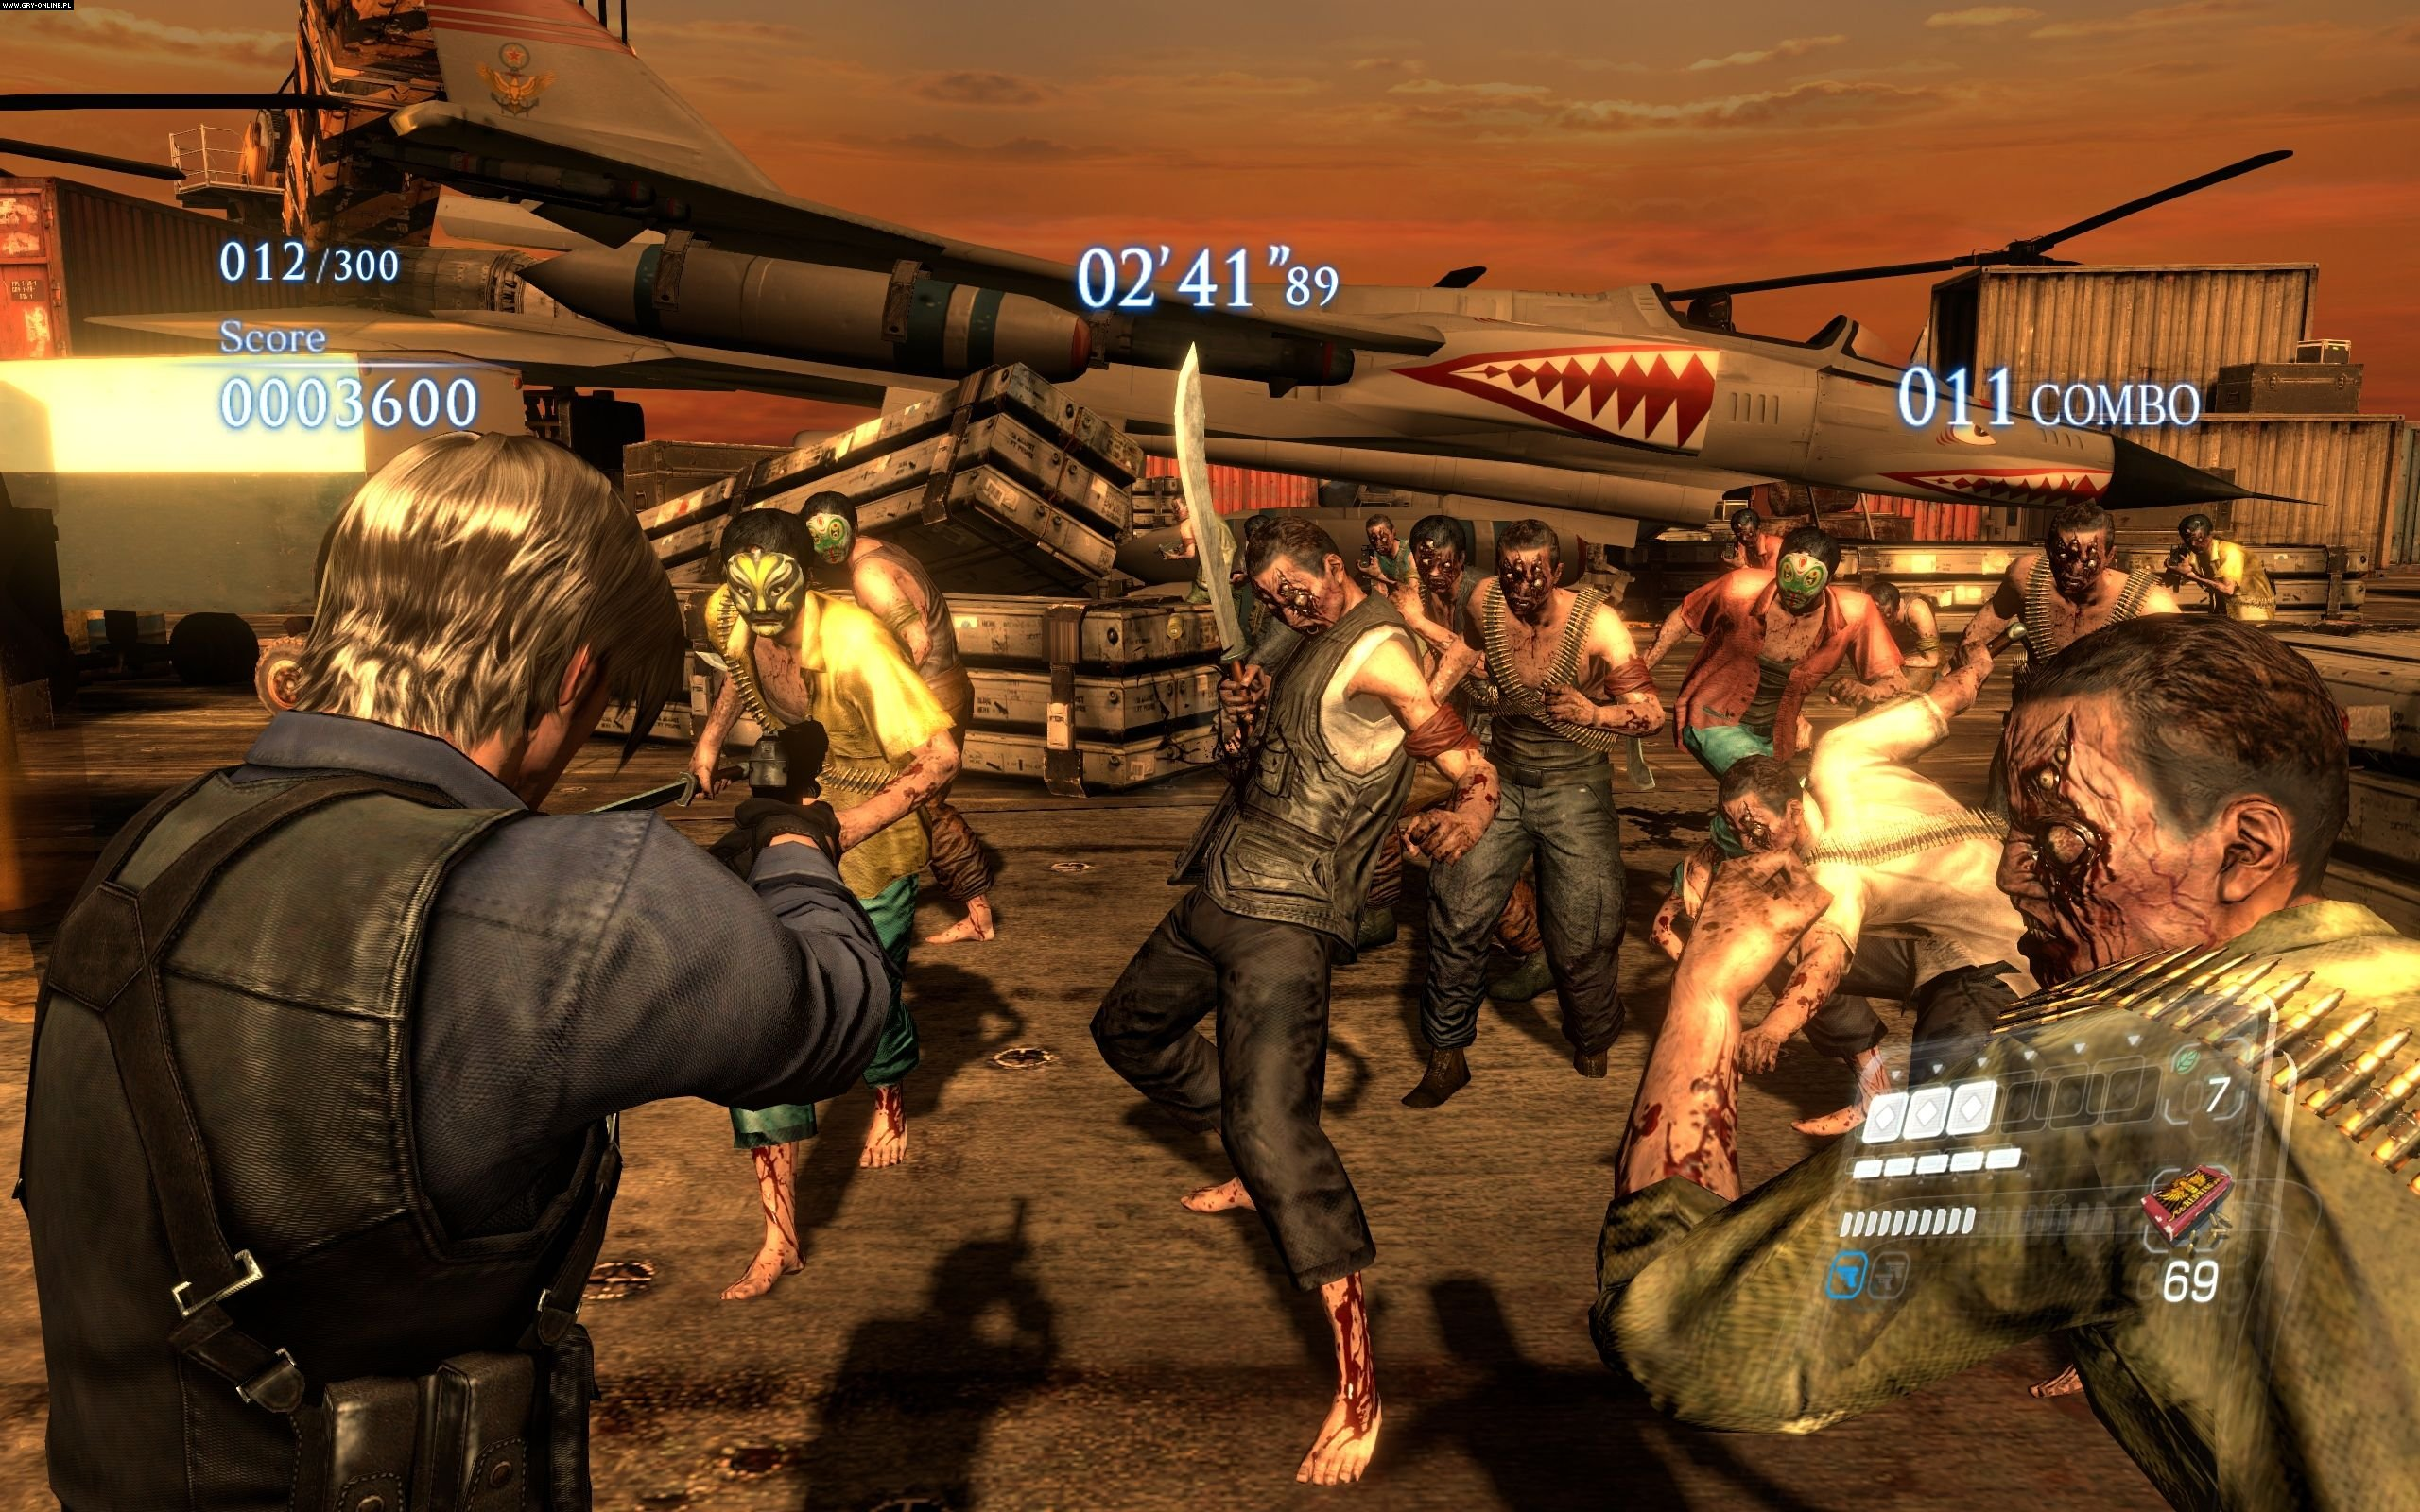 Resident Evil 6 PC, X360, PS3 Gry Screen 49/237, Capcom